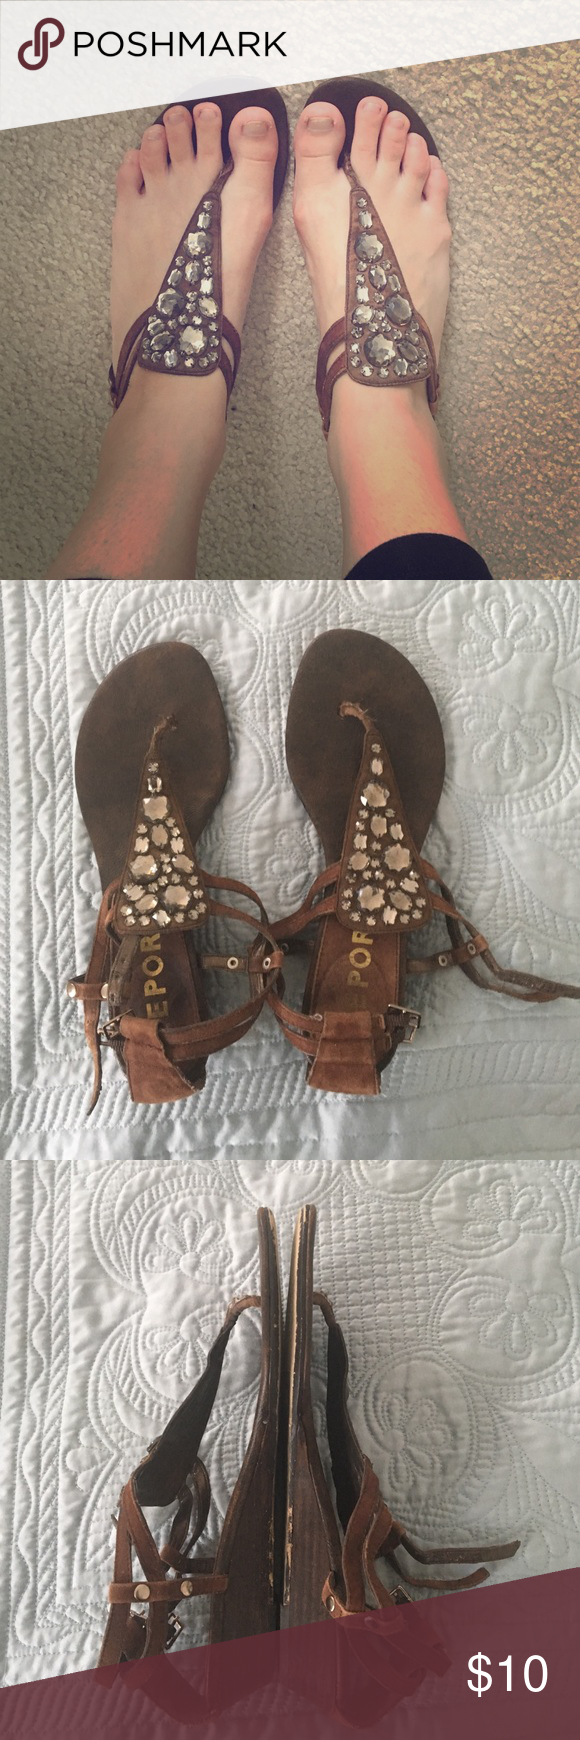 Brown Rampage Sandals Brown Rampage Sandals with Rhinestone embellishment and a slight heel. Worn a bit, but still in fairly good condition. Rampage Shoes Sandals